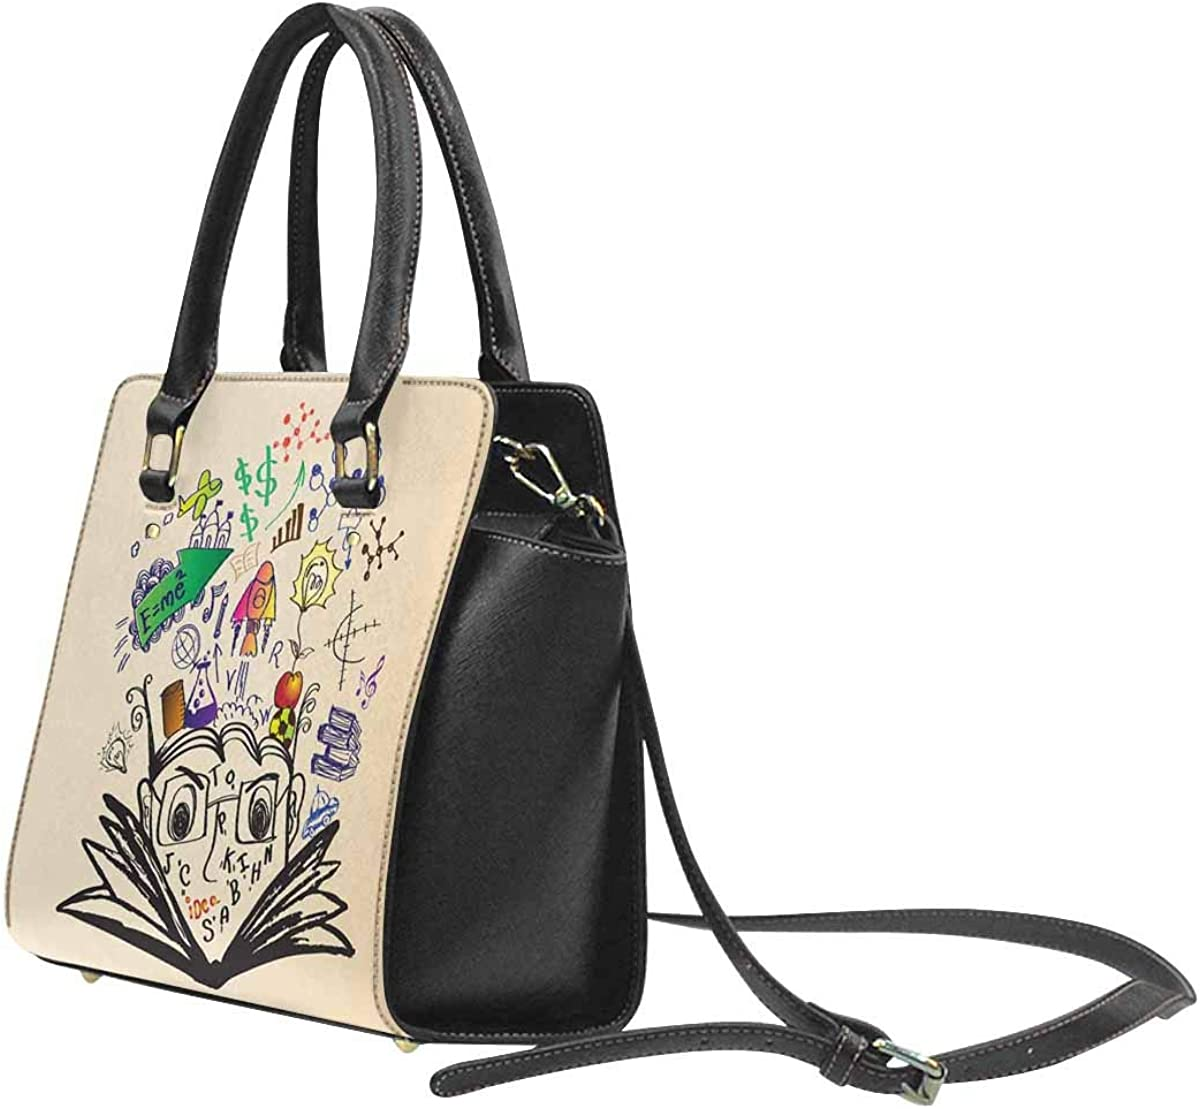 INTERESTPRINT Graphic Education Designs Handbags Tote Bag Shoulder Bag Top Handle Satchel Purse